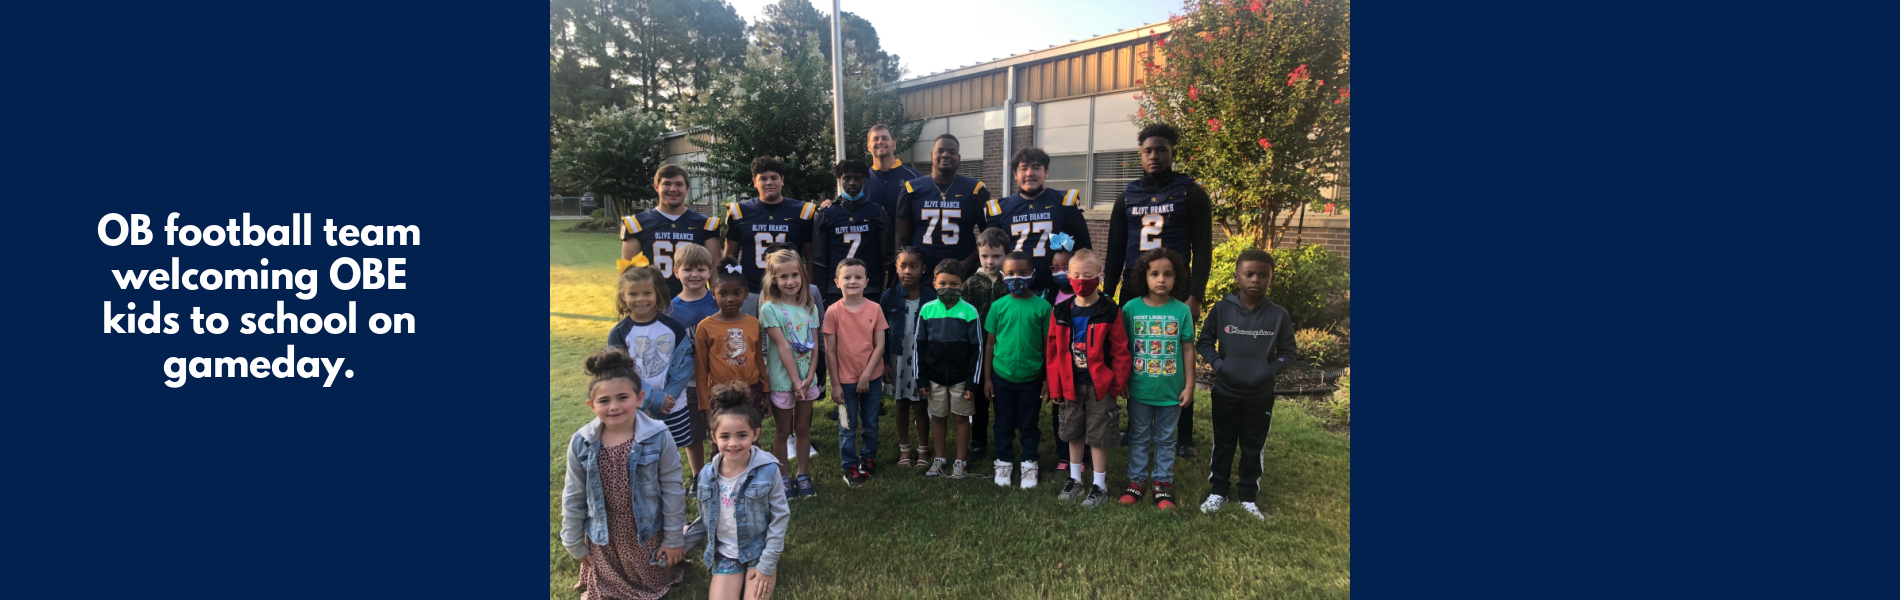 Football players greet OBE students on game day